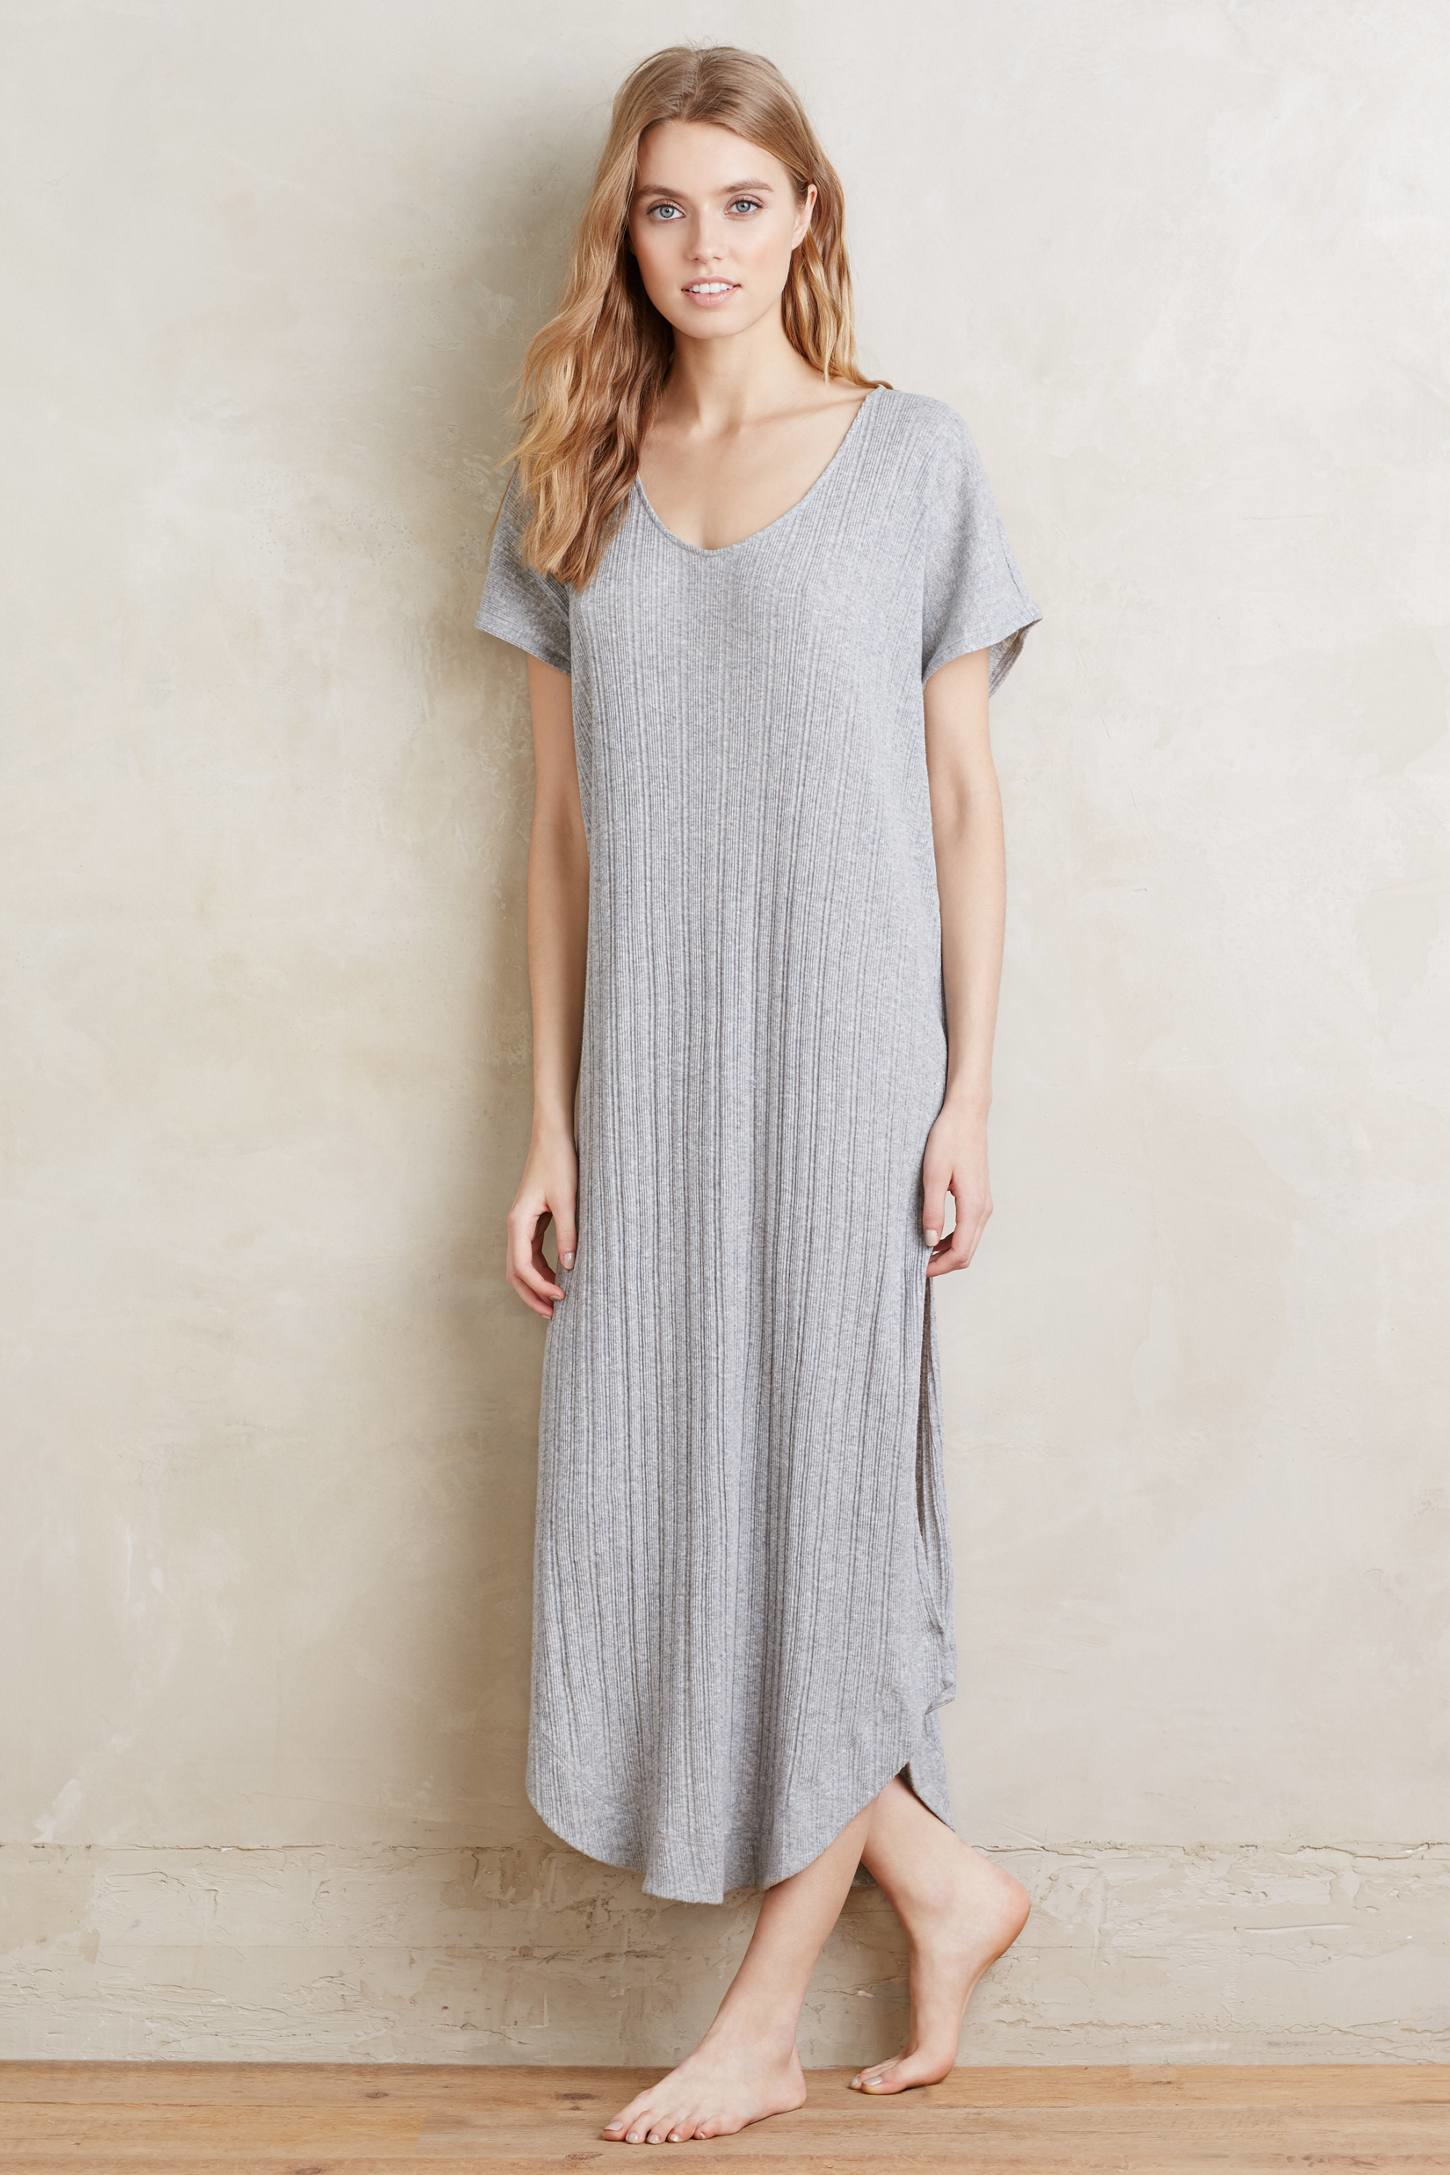 Lyst - Skin Ribbed Sleep Gown in Gray